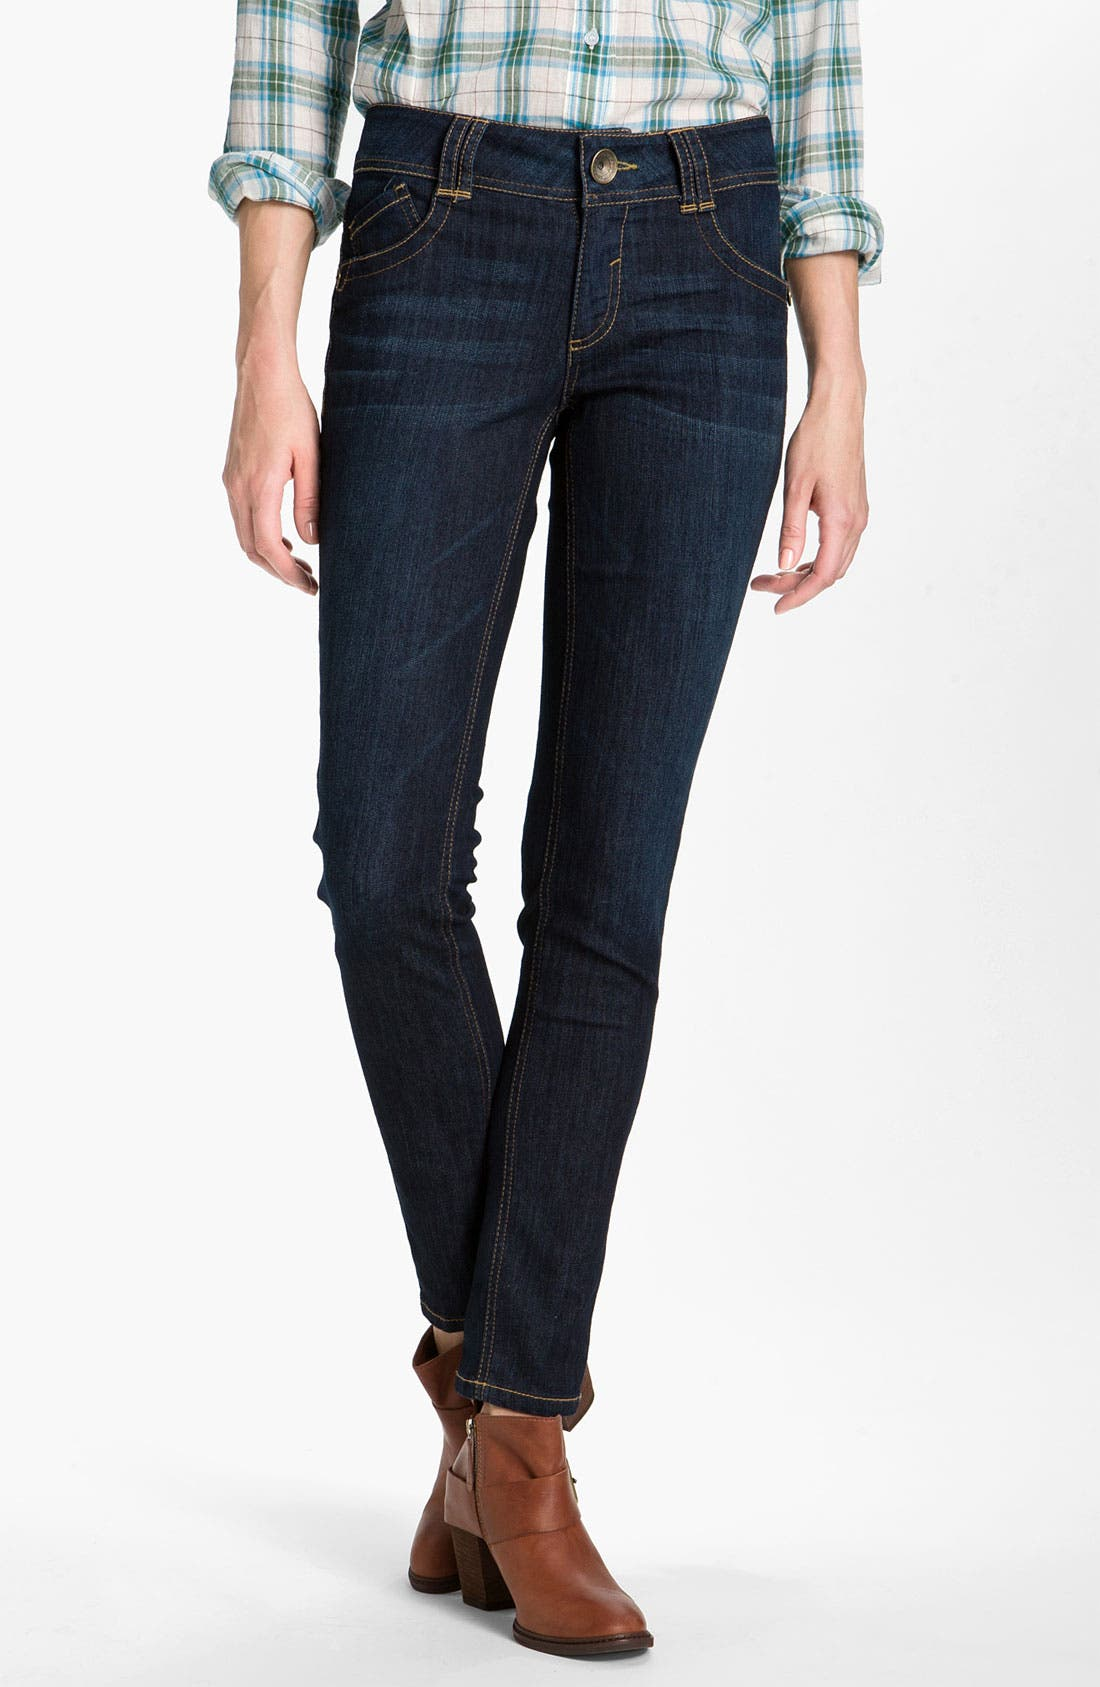 Main Image - Wit & Wisdom Denim Leggings (Indigo Wash) (Nordstrom Exclusive)